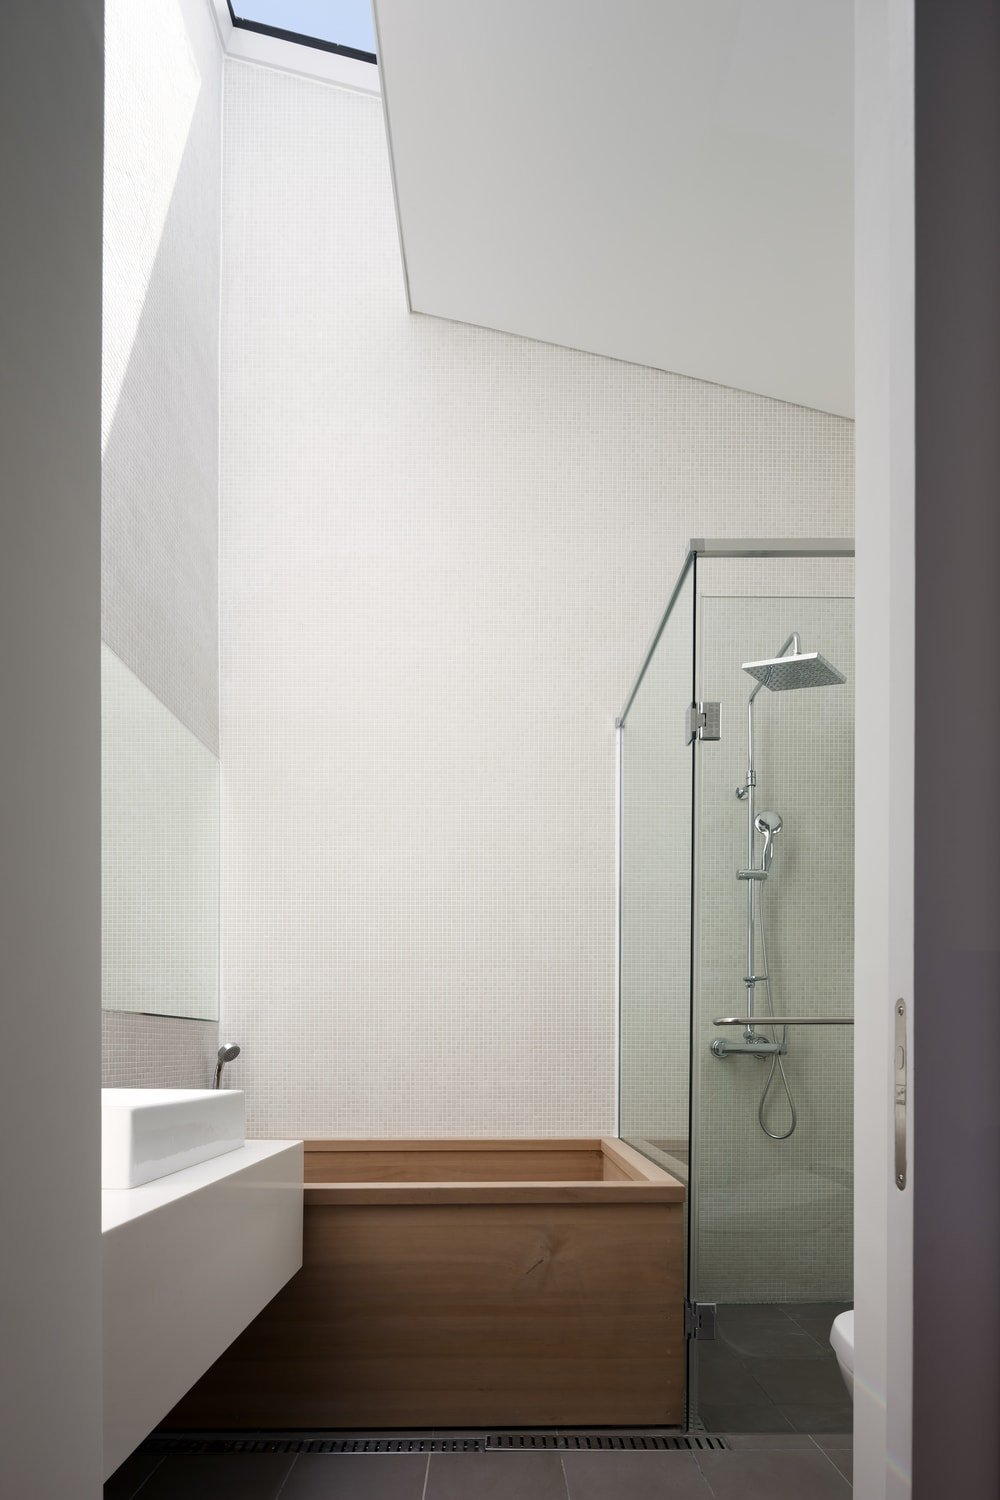 The bathroom has a glass-enclosed shower area and a wooden bathtub by the white sink.